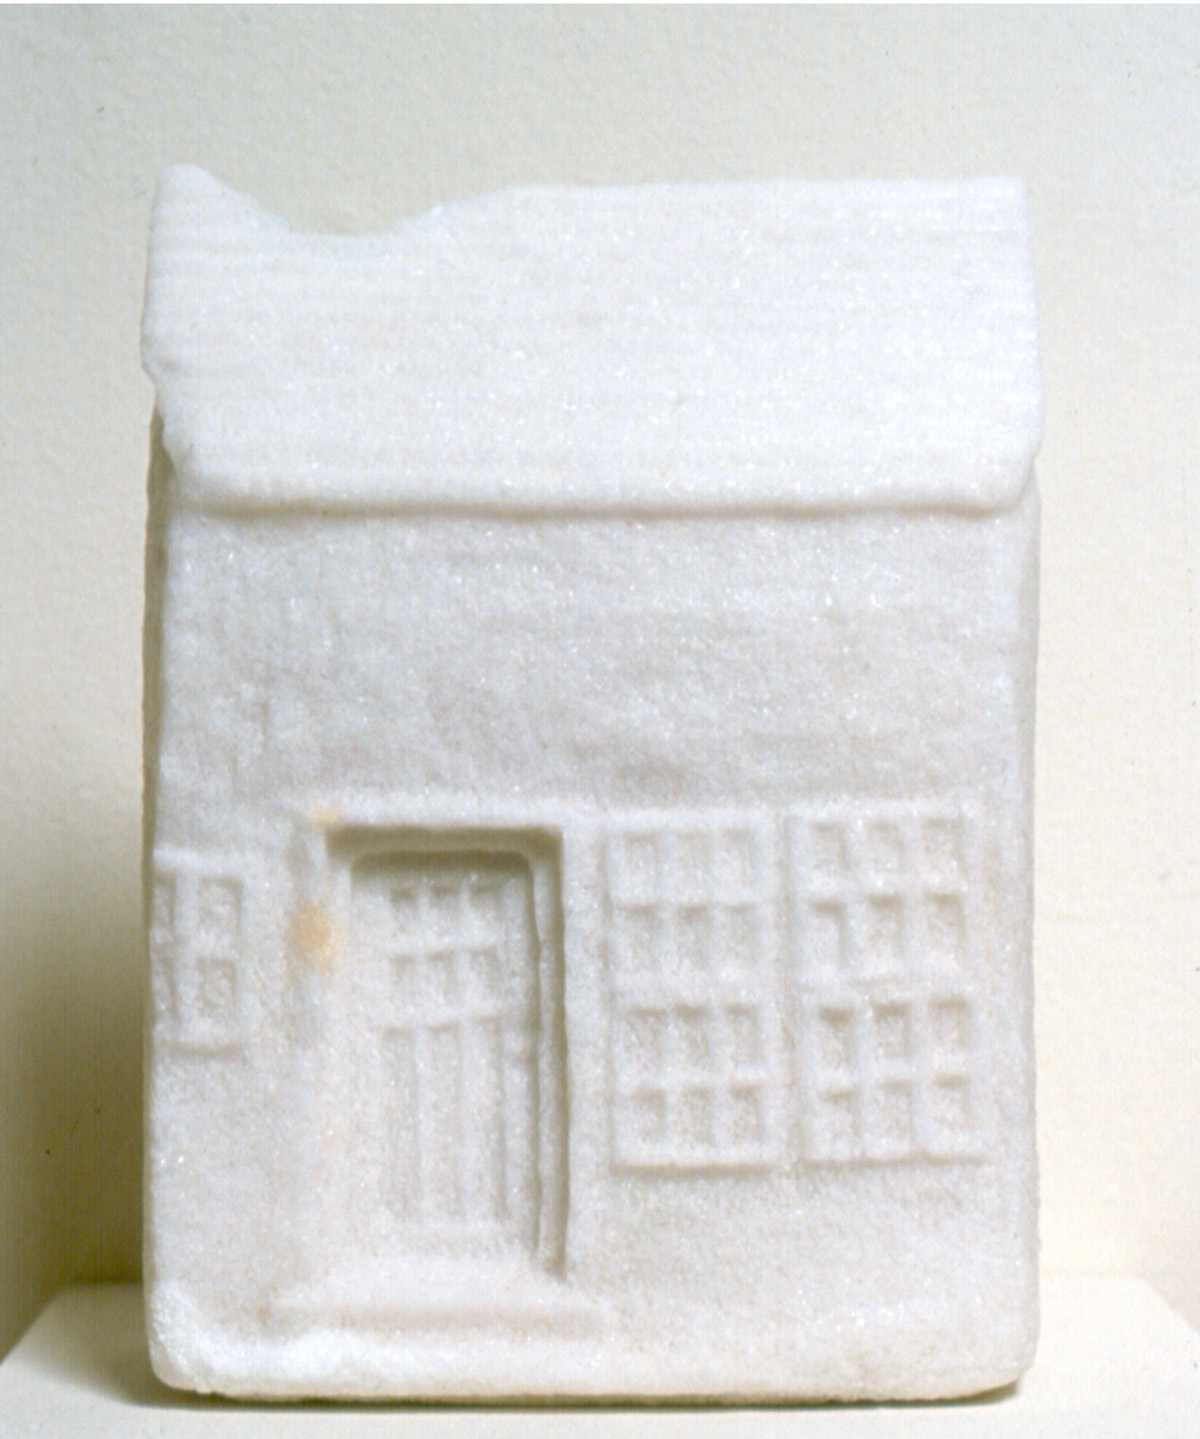 $300/ea - Rememory (all the places I've lived). Carved salt block, processed by cows. 10